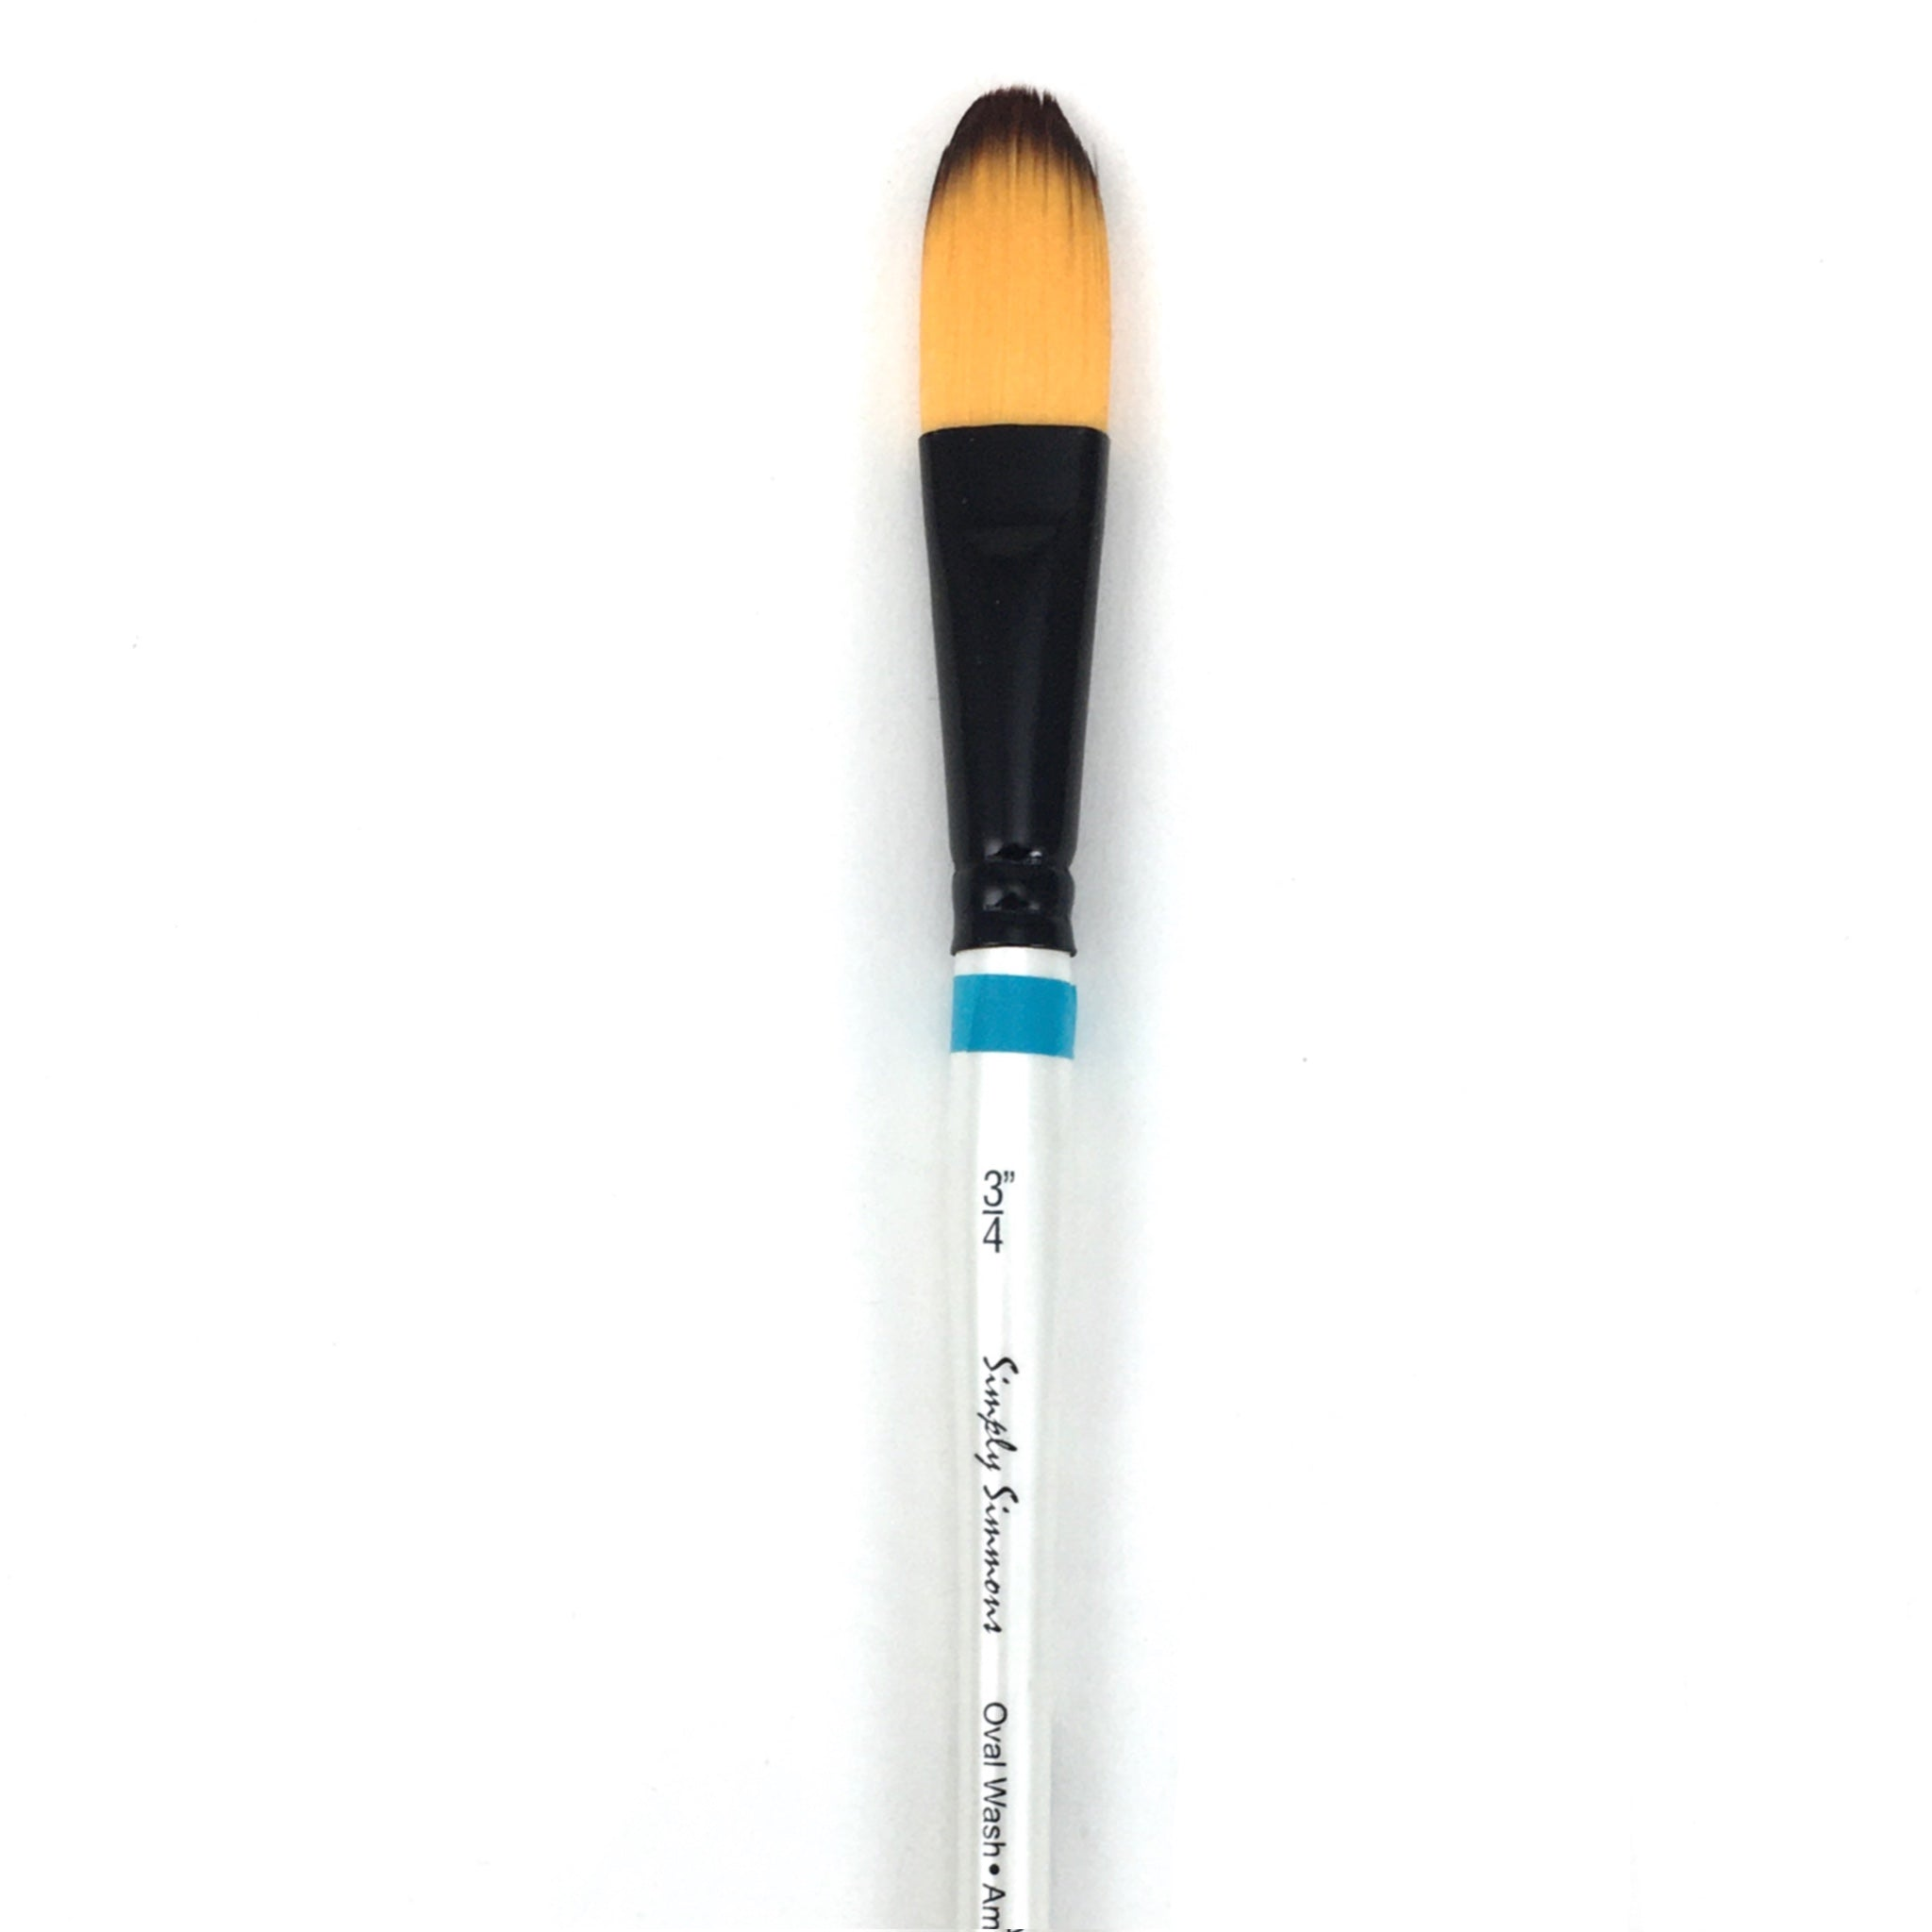 Robert Simmons Simply Simmons Watercolor Brush (Short Handle) - Oval Wash / - 3/4 inches / - synthetic by Robert Simmons - K. A. Artist Shop